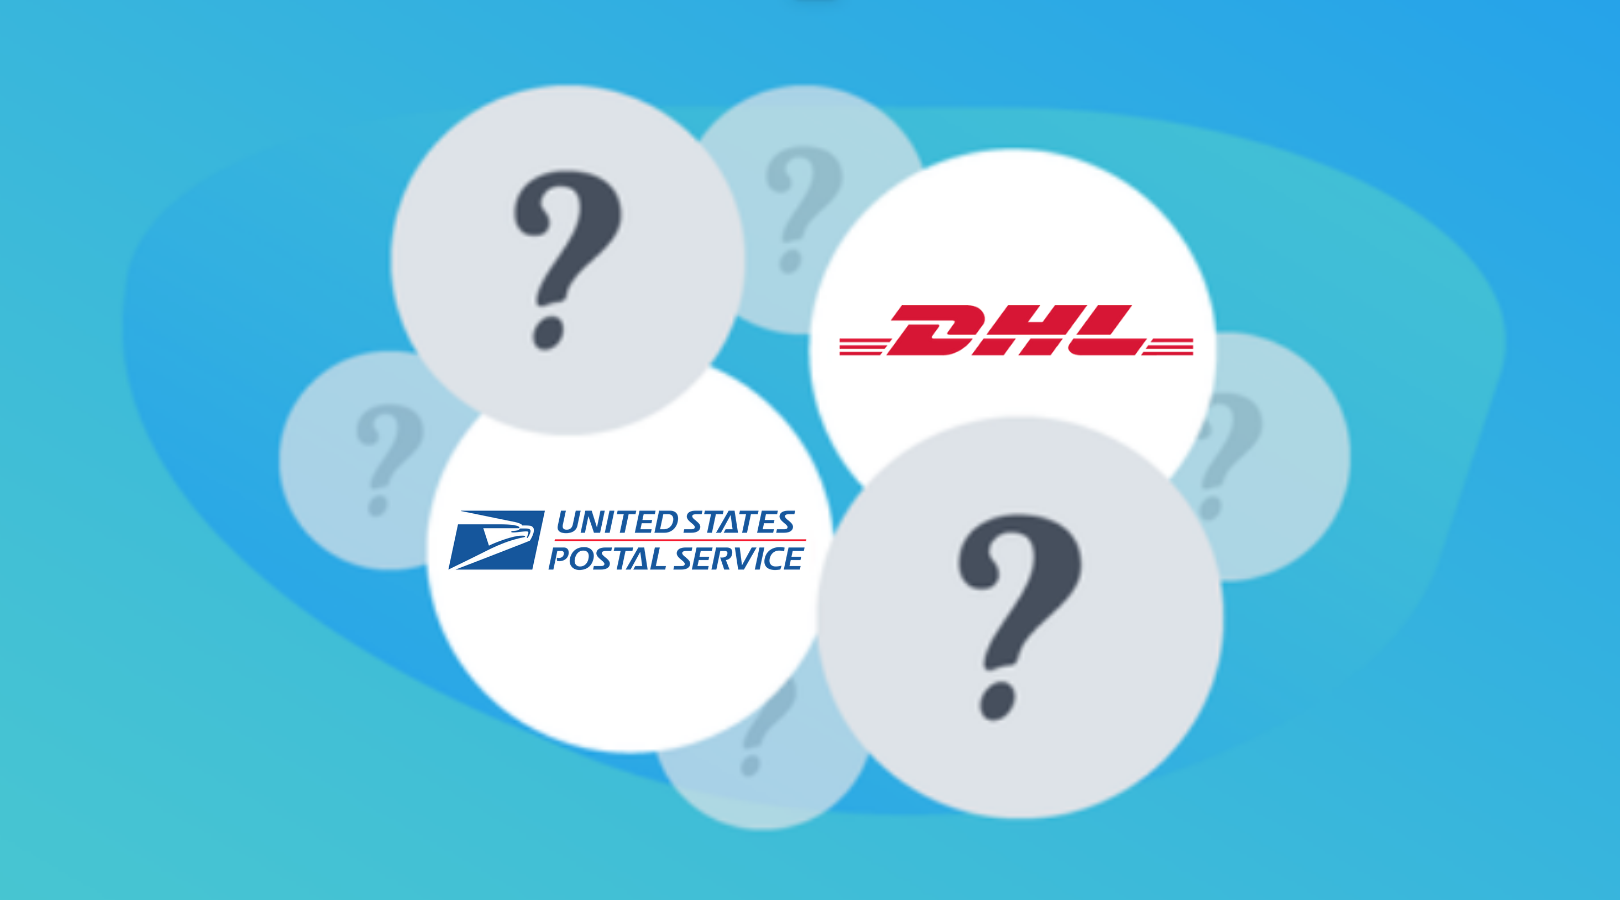 DHL vs. USPS: Which is Better for Your eCommerce Business?